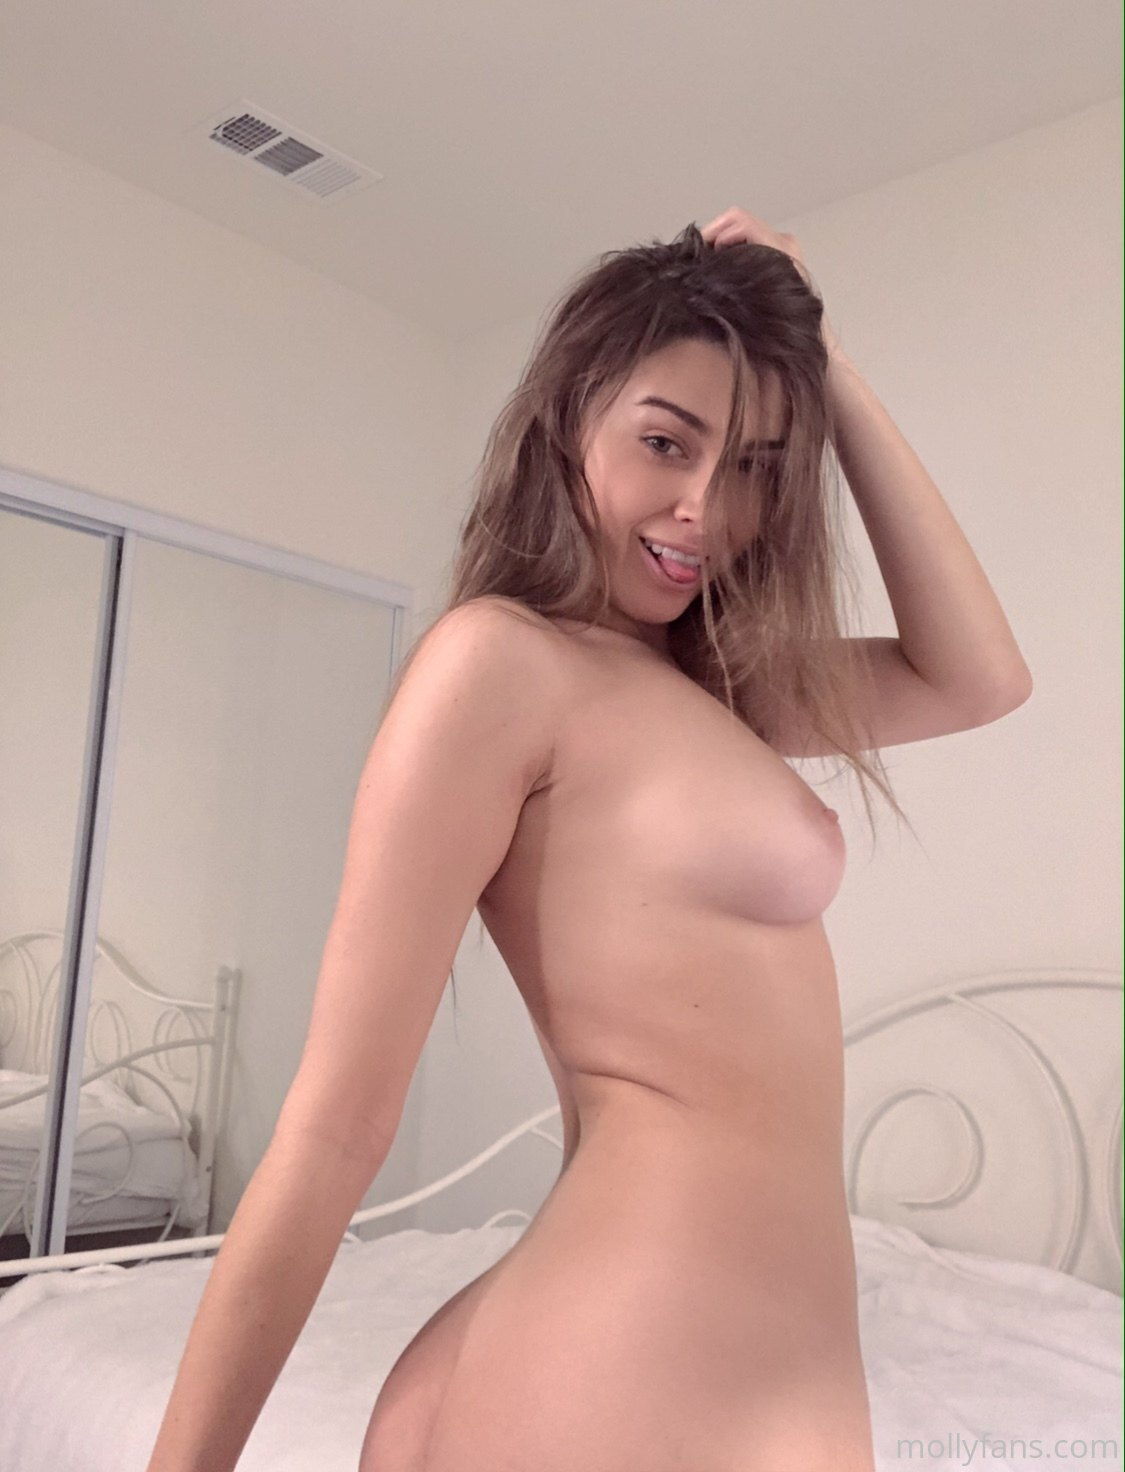 Molly X, Moremolly, Onlyfans 0002